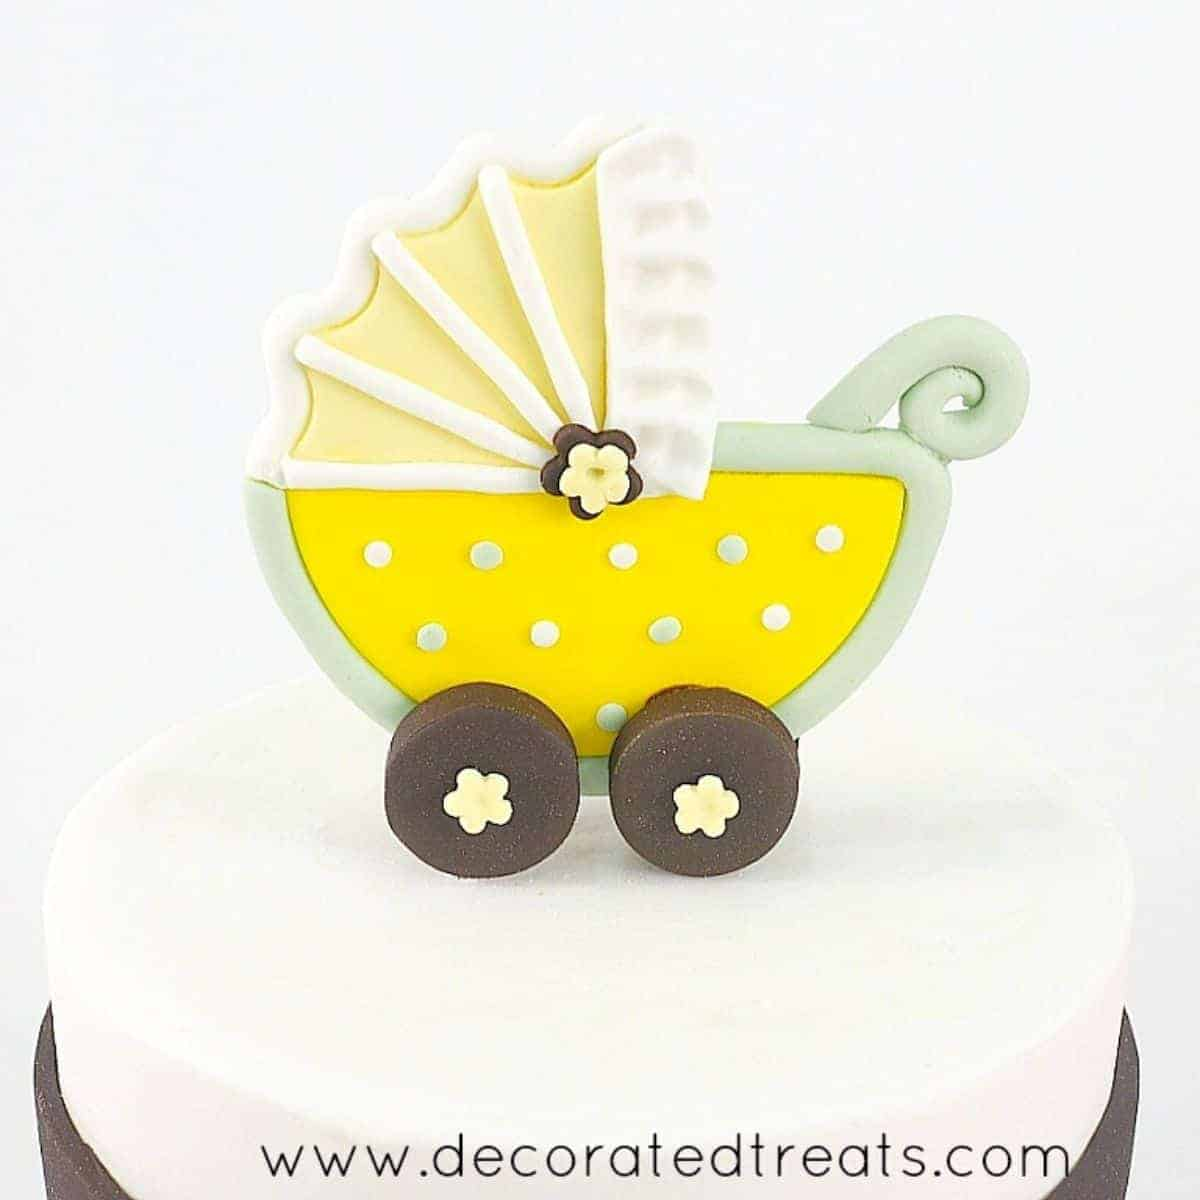 Stroller baby shower cake topper in yellow and green